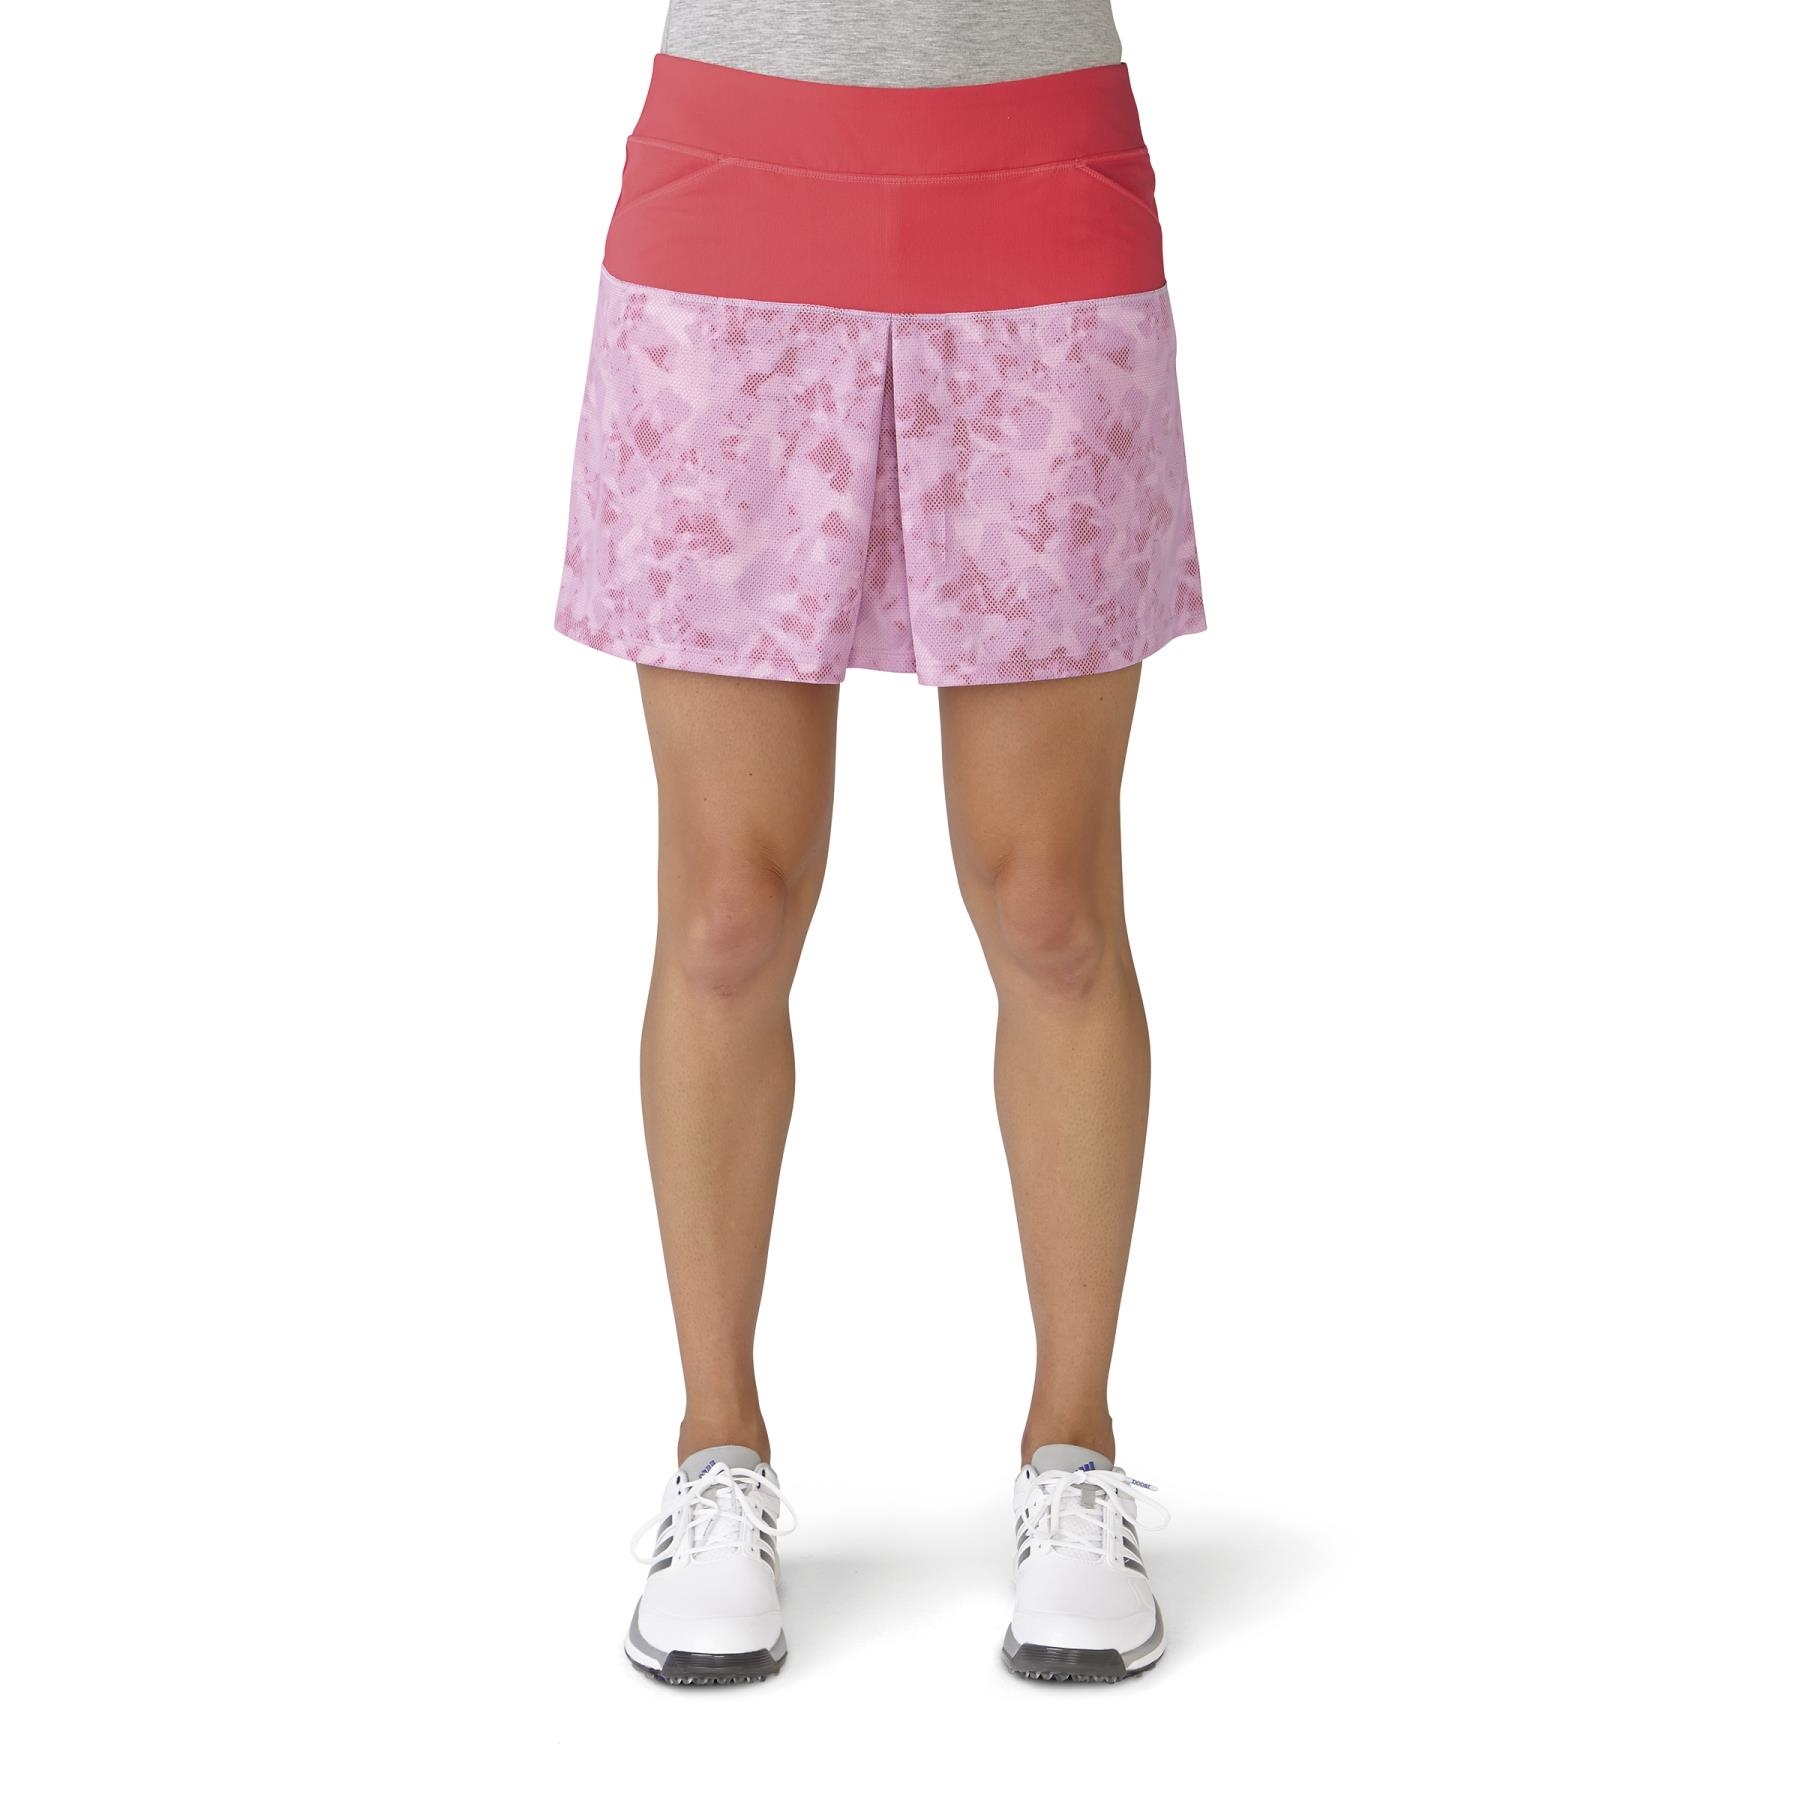 adidas Women's Tour Mixed Print Pull On Red Golf Skort